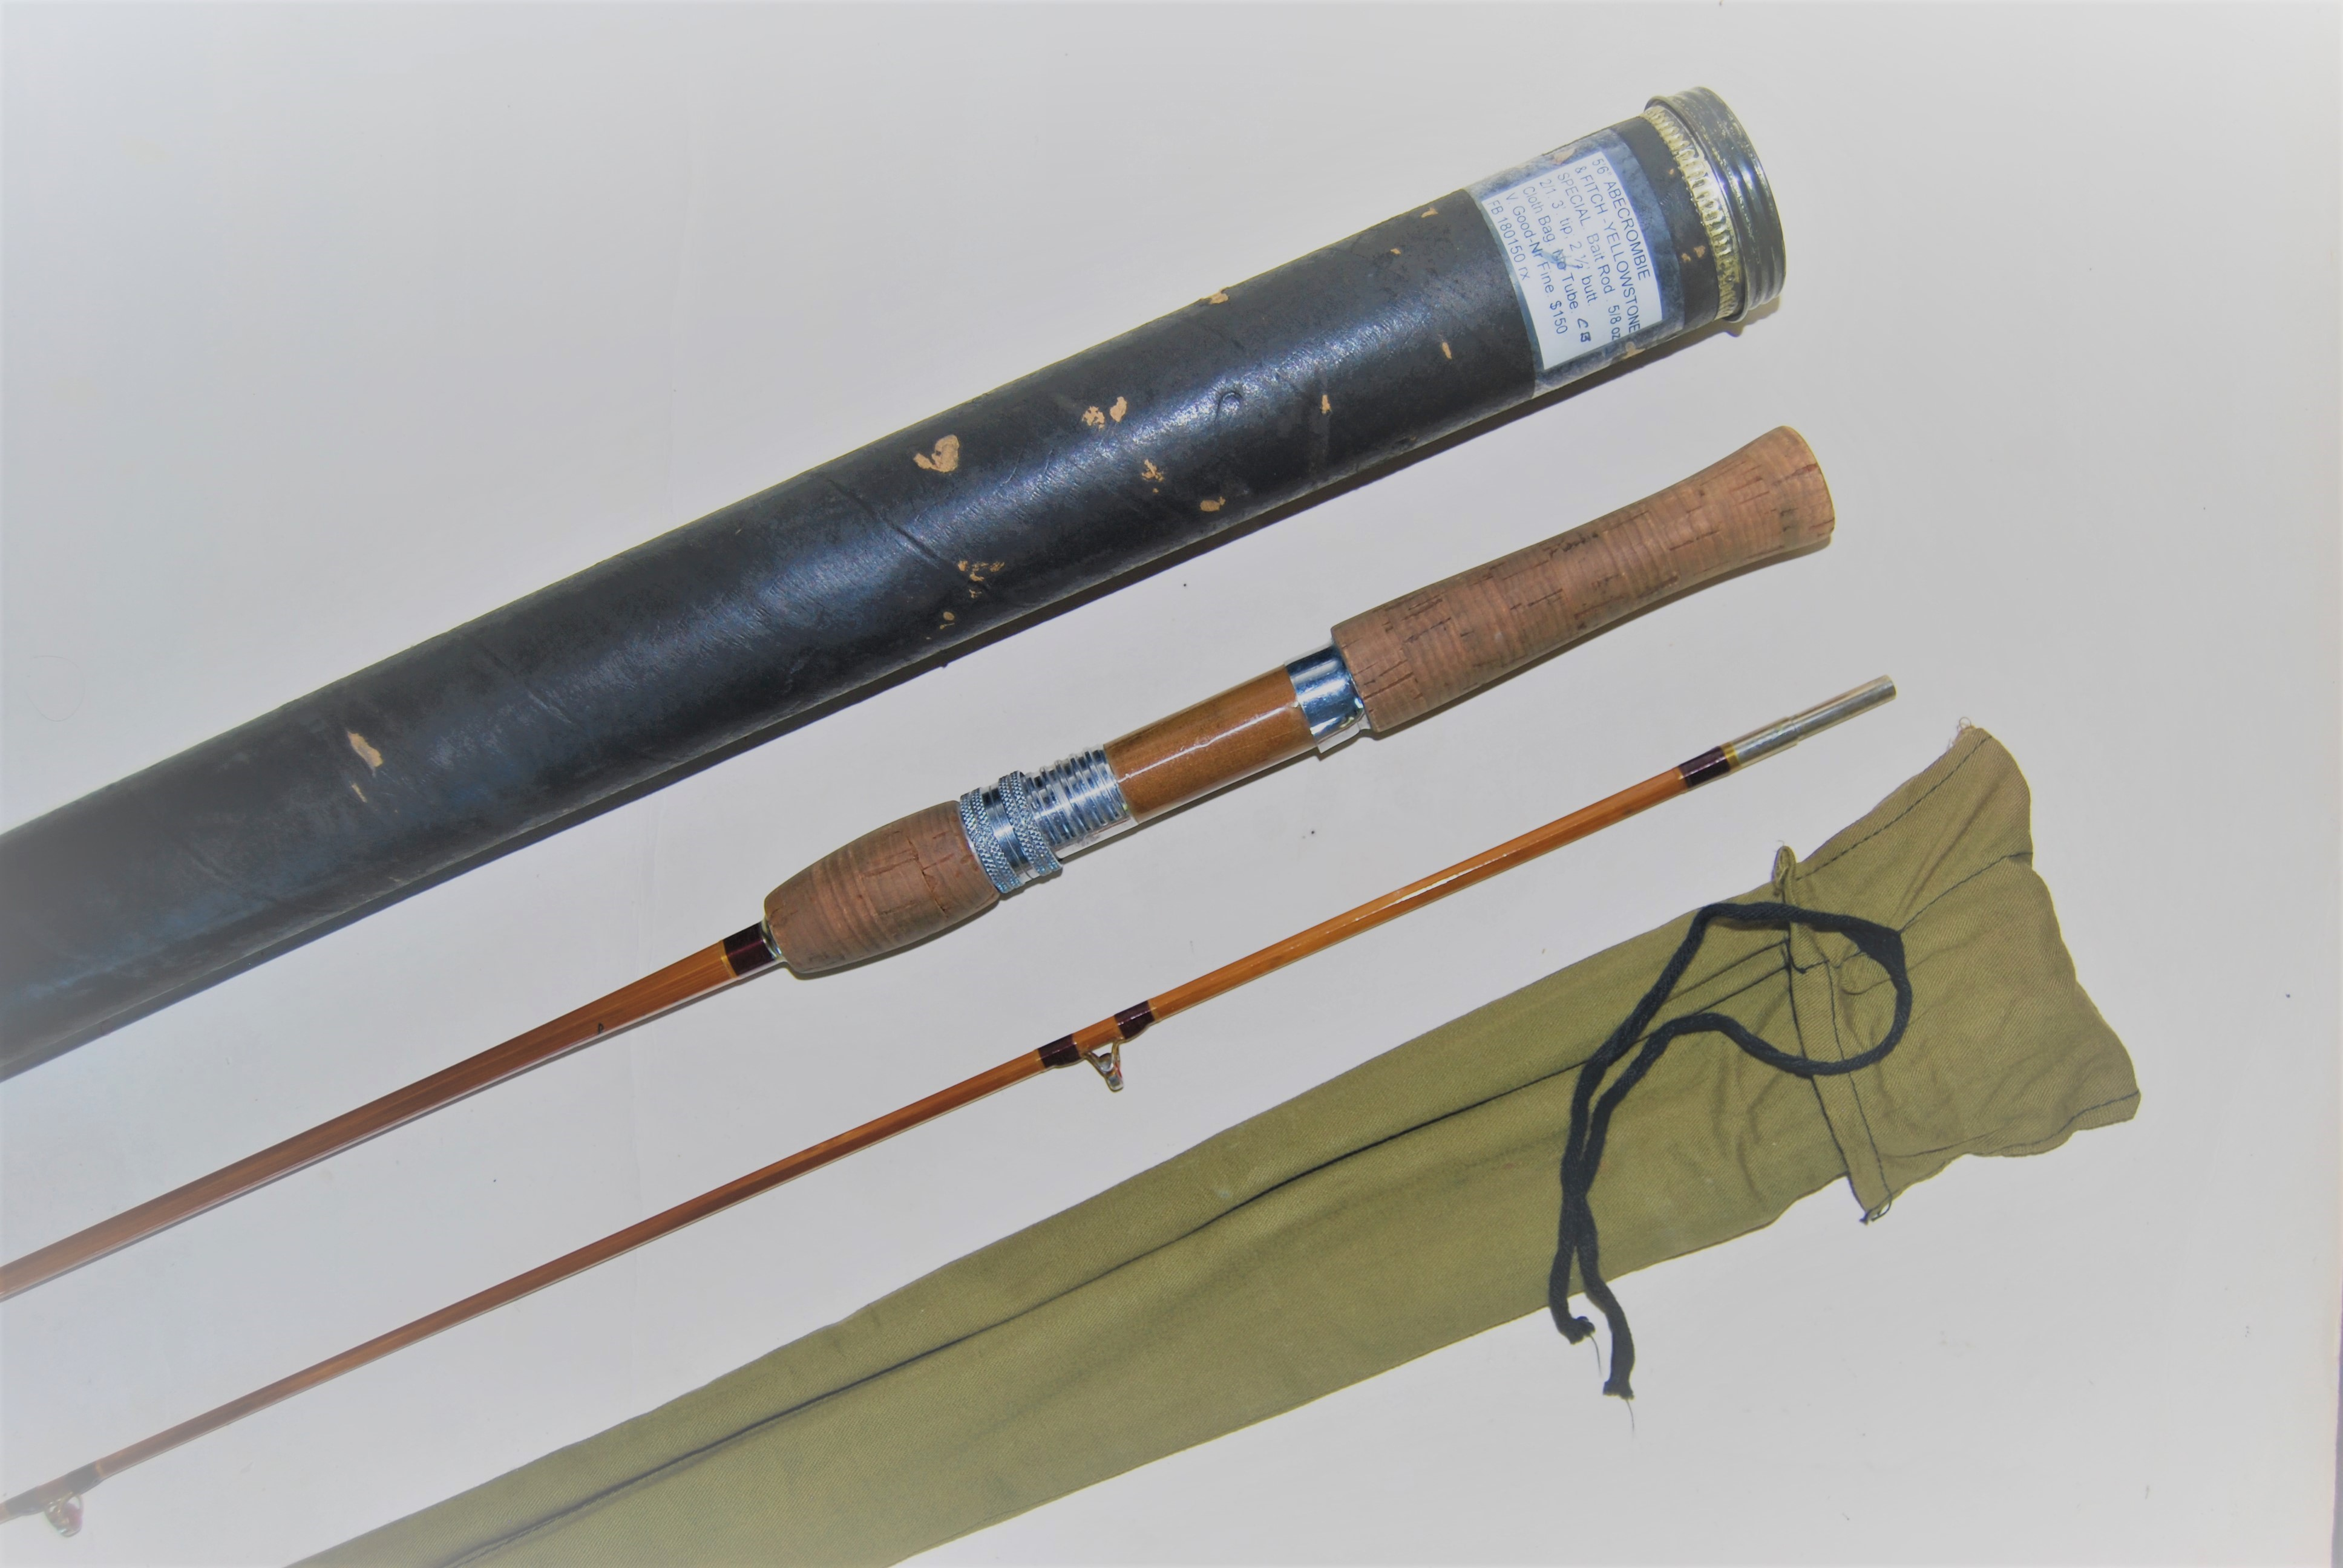 Category: FLY ROD BAMBOO